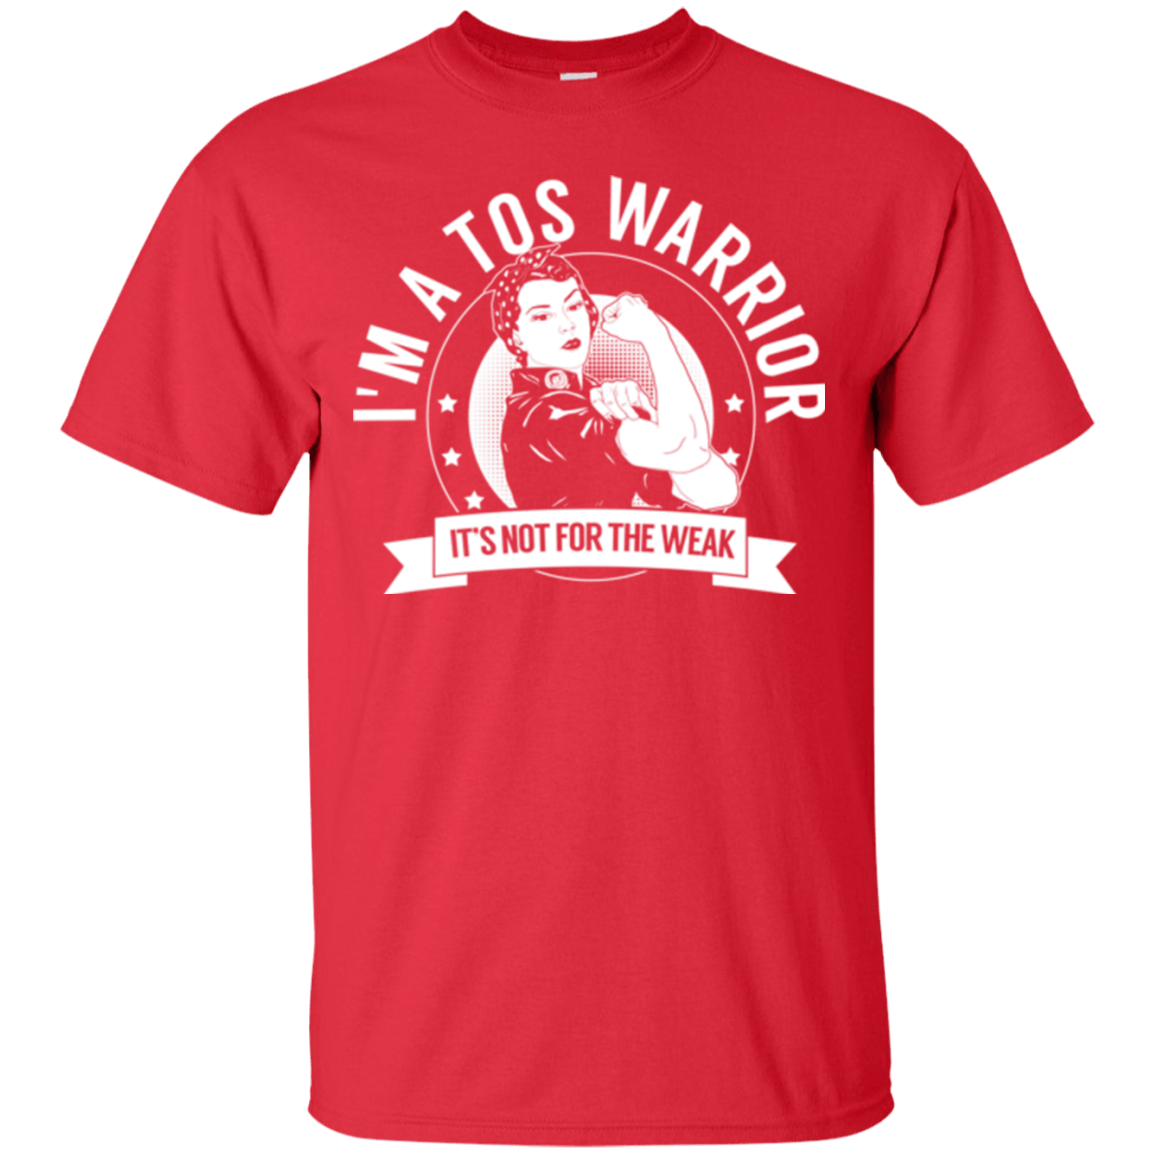 T-Shirts - Thoracic Outlet Syndrome - TOS Warrior Not For The Weak Cotton T-Shirt